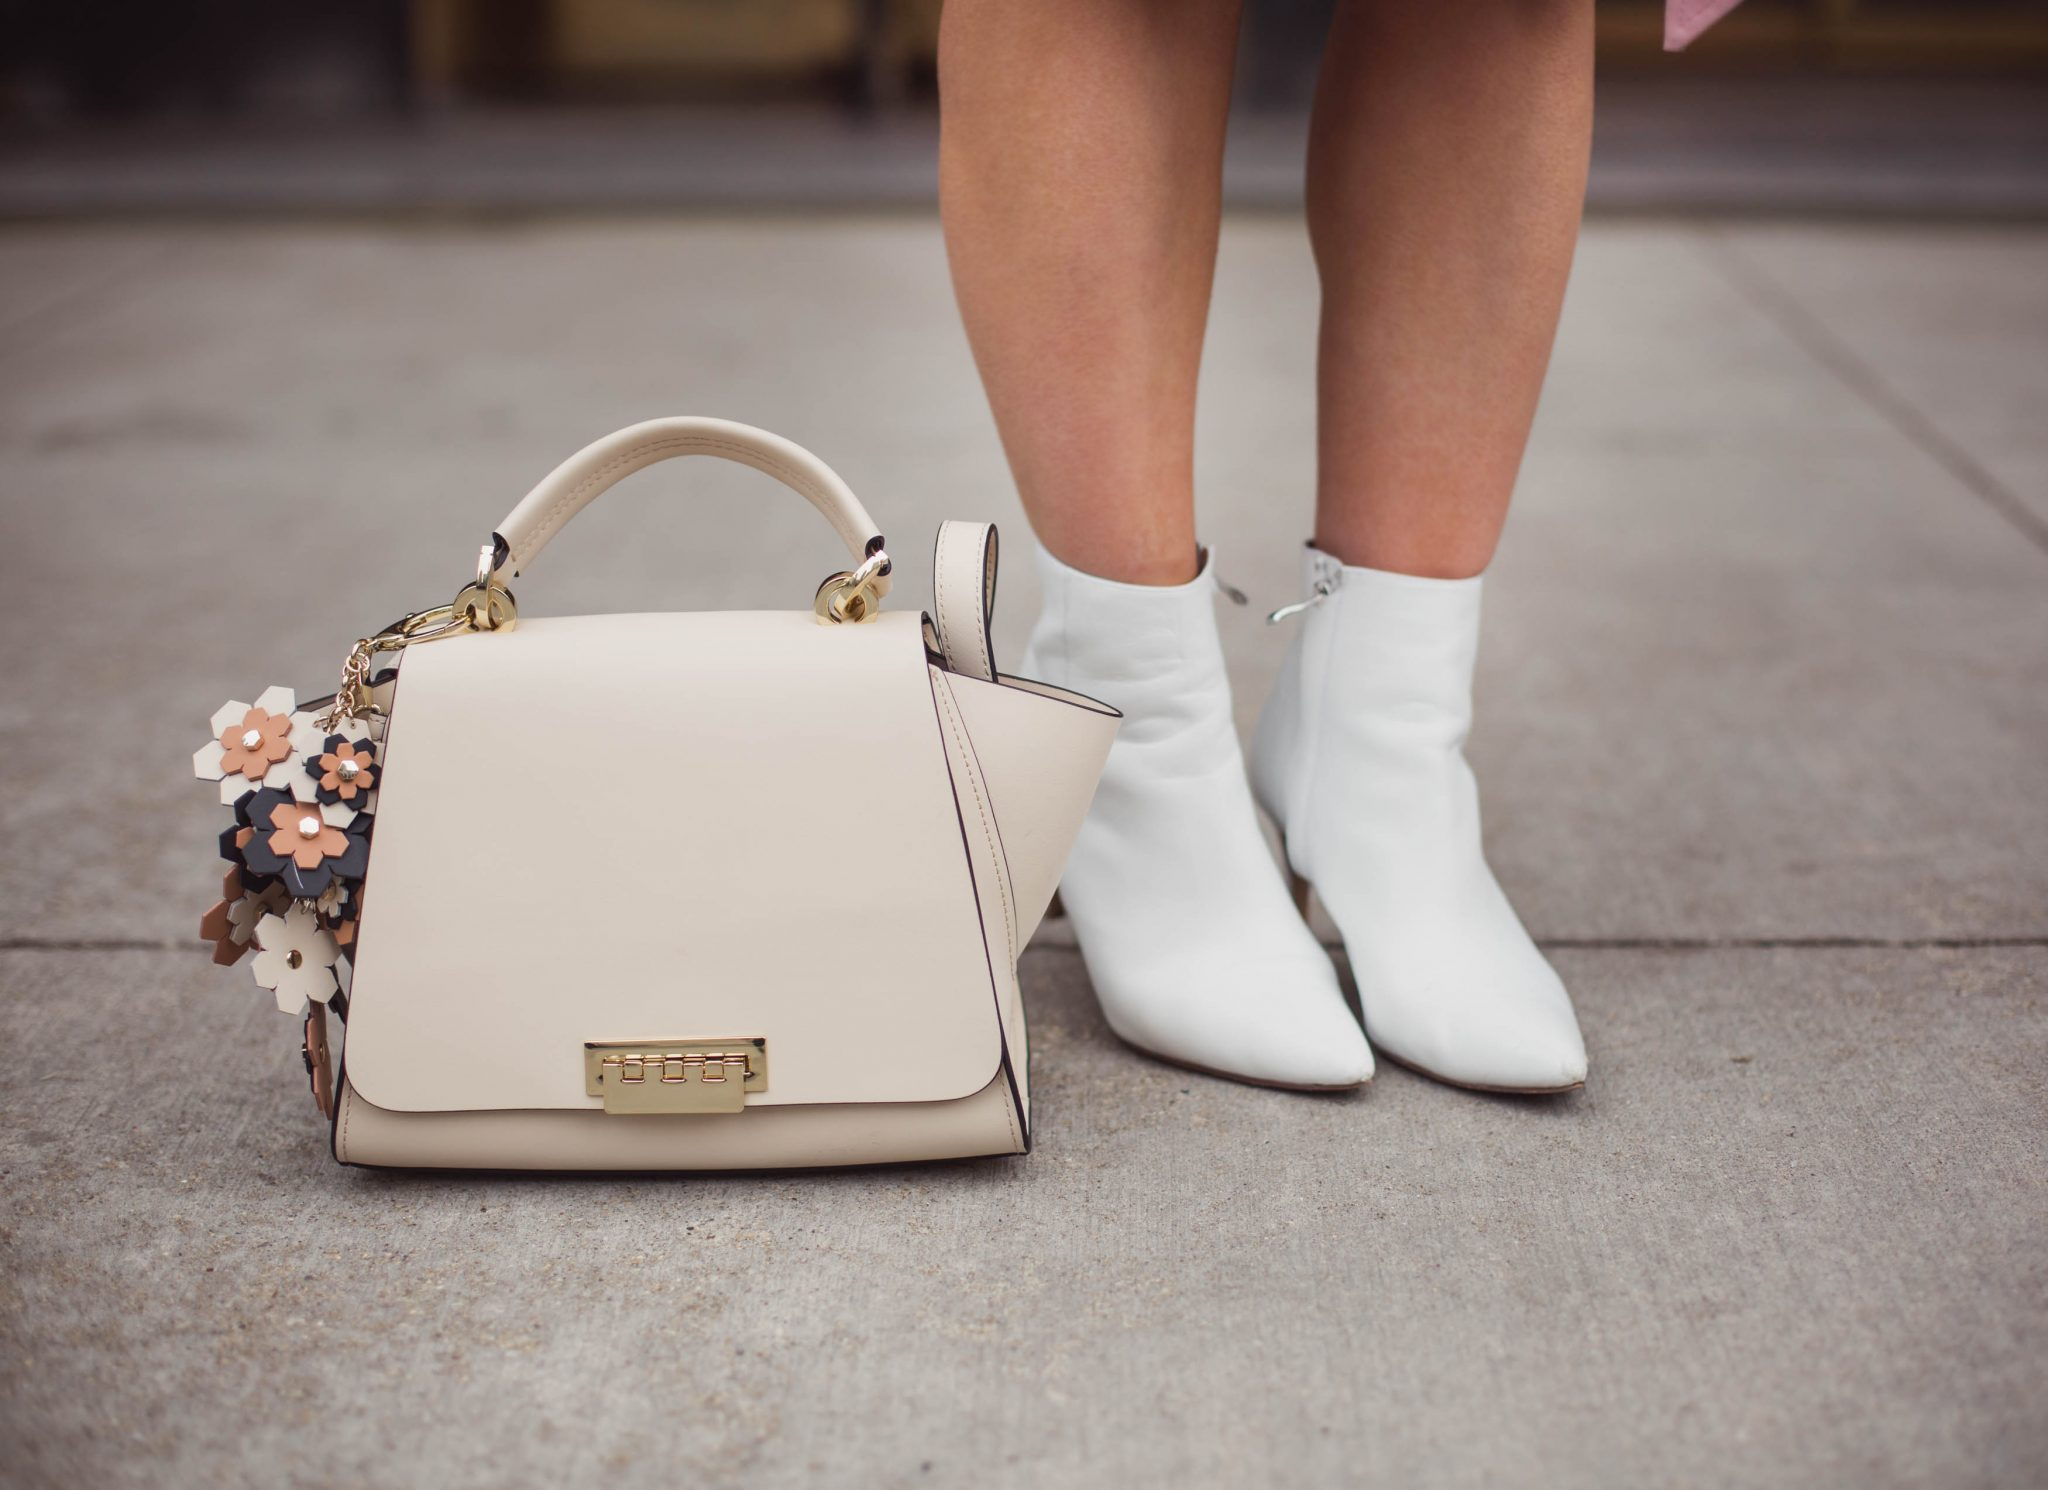 Lifestyle blogger Roxanne of Glass of Glam wearing an Eliza J dress, white booties, Zac Posen bag, and a pink trench coat